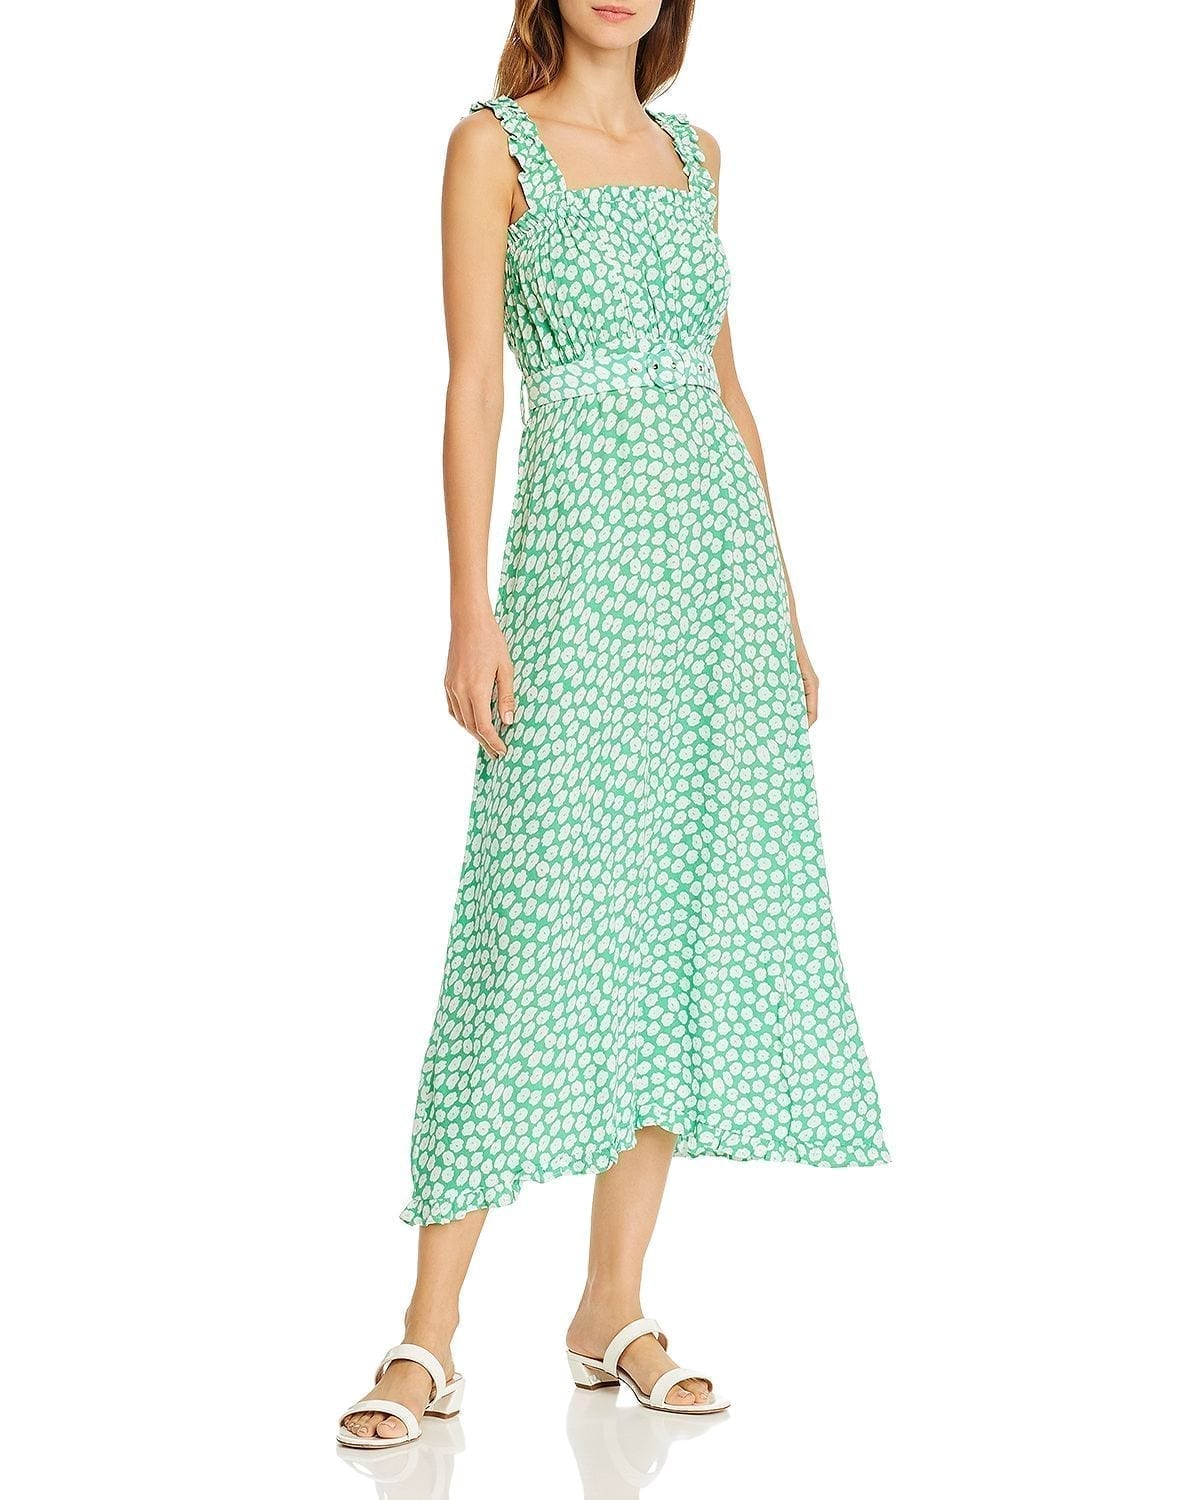 FAITHFULL THE BRAND St Tropez Ruffled Dress